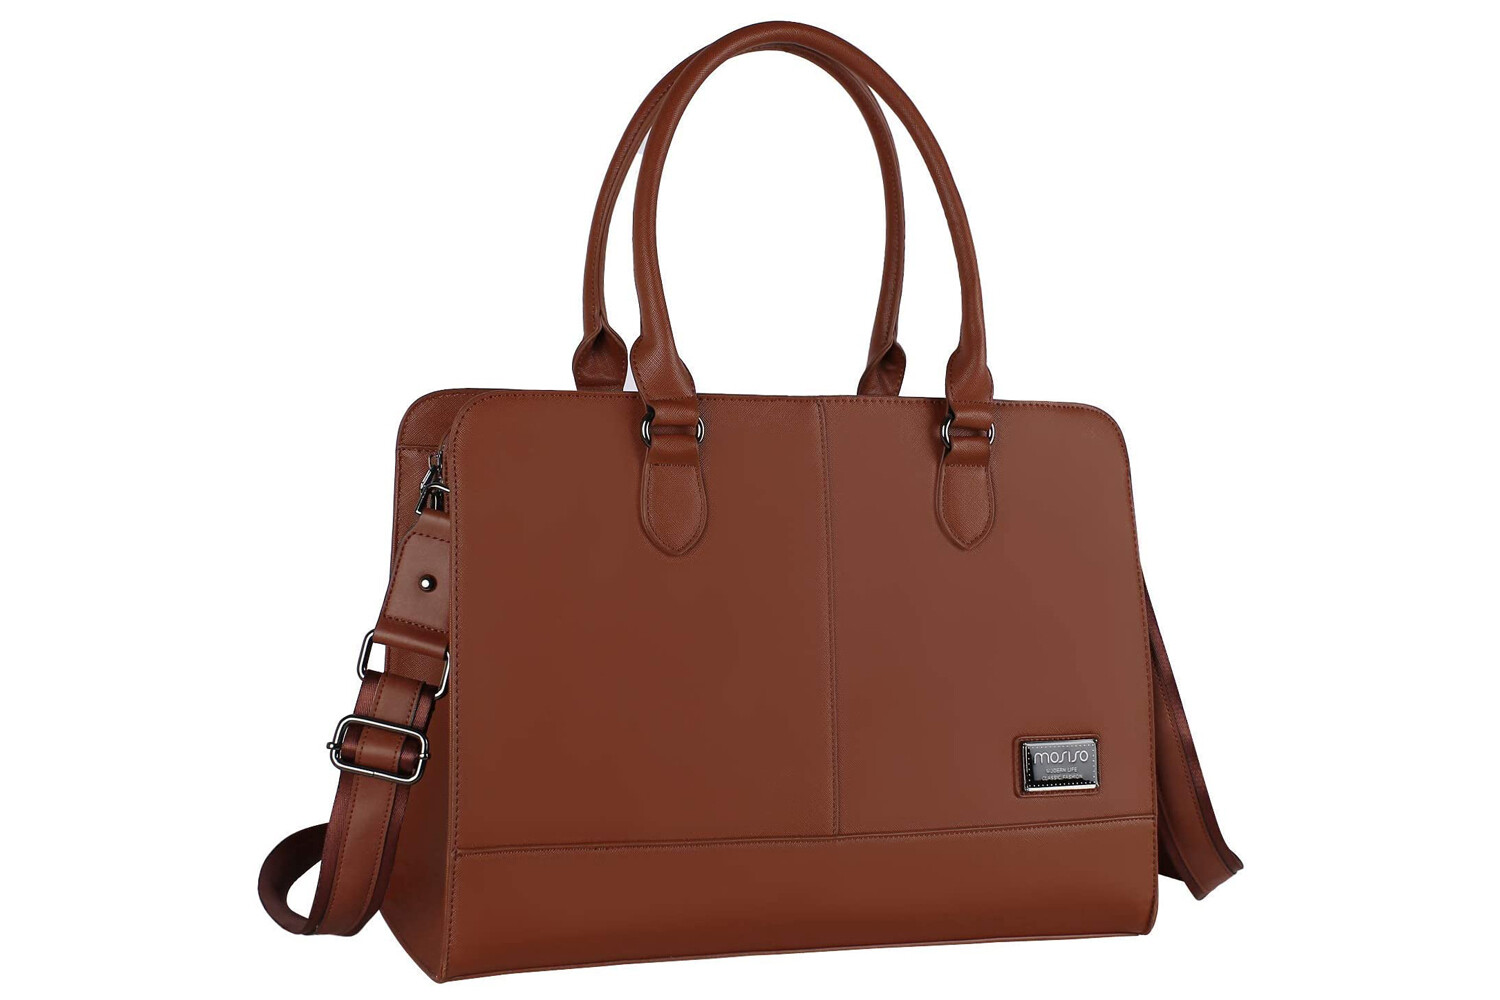 MOSISO Women Laptop Tote Bag (Up to 15.6 Inch) 3 Layer Compartments, Brown